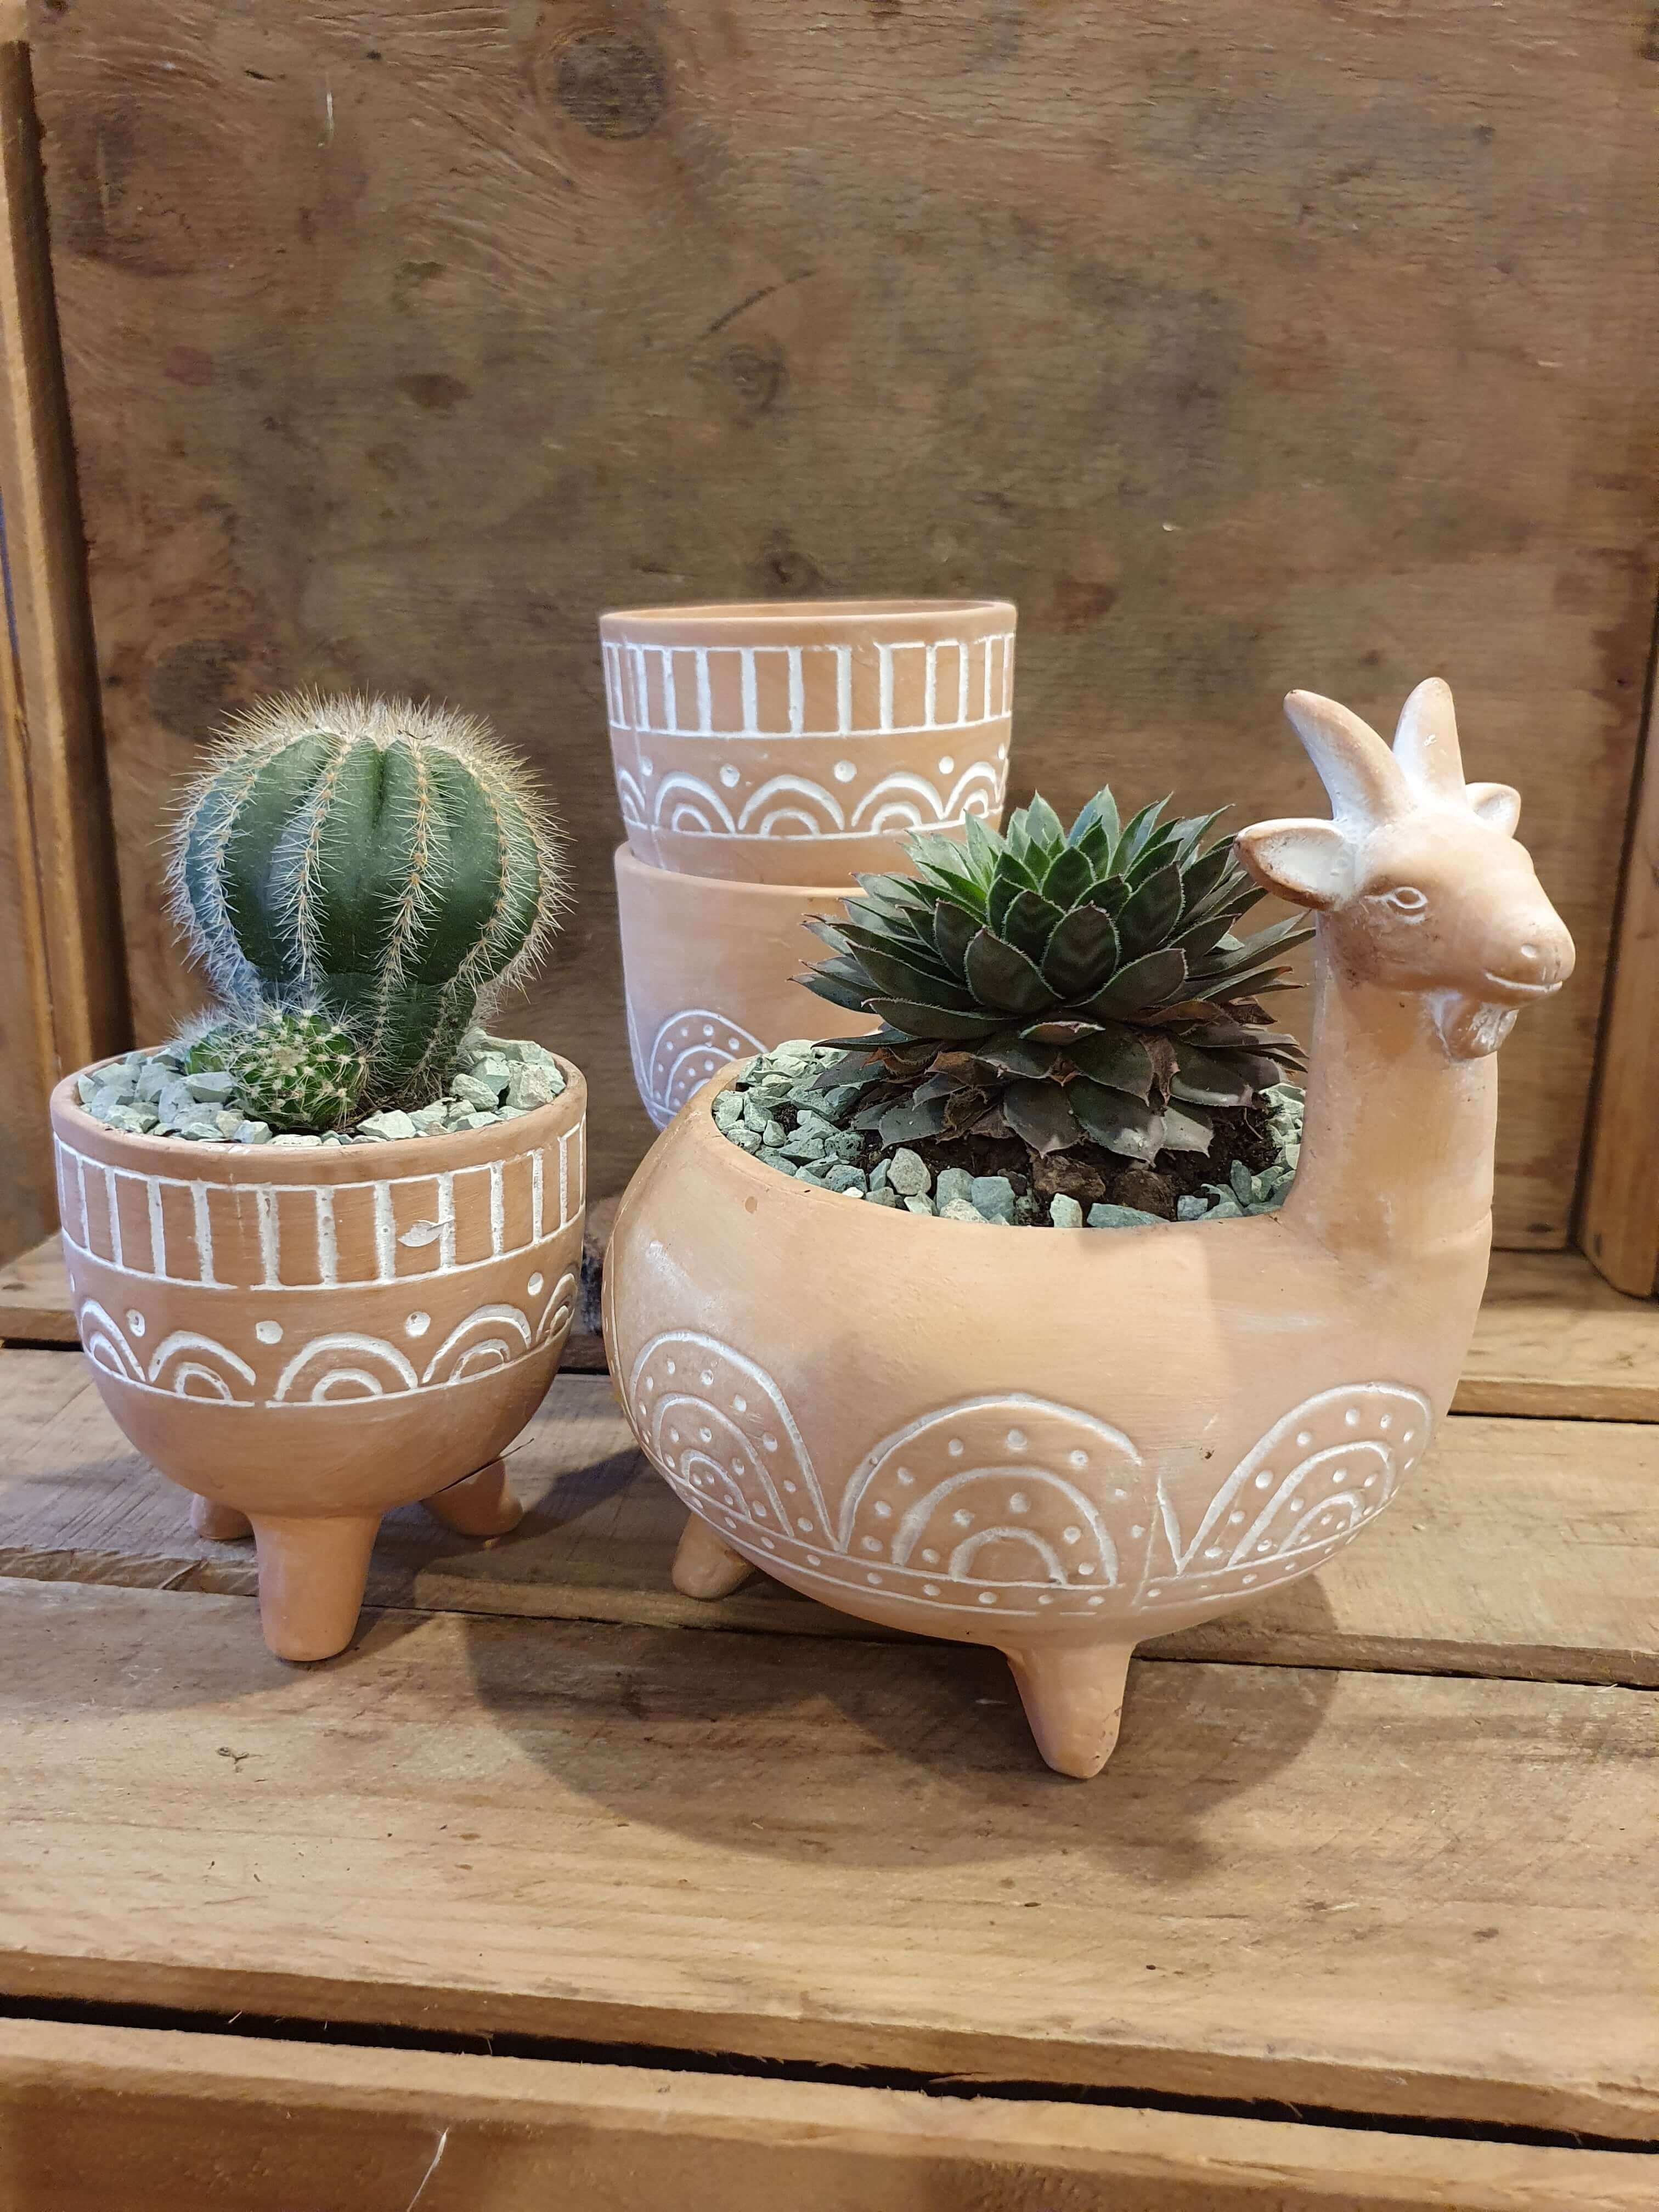 Lemo Goat Planter with assorted cacti